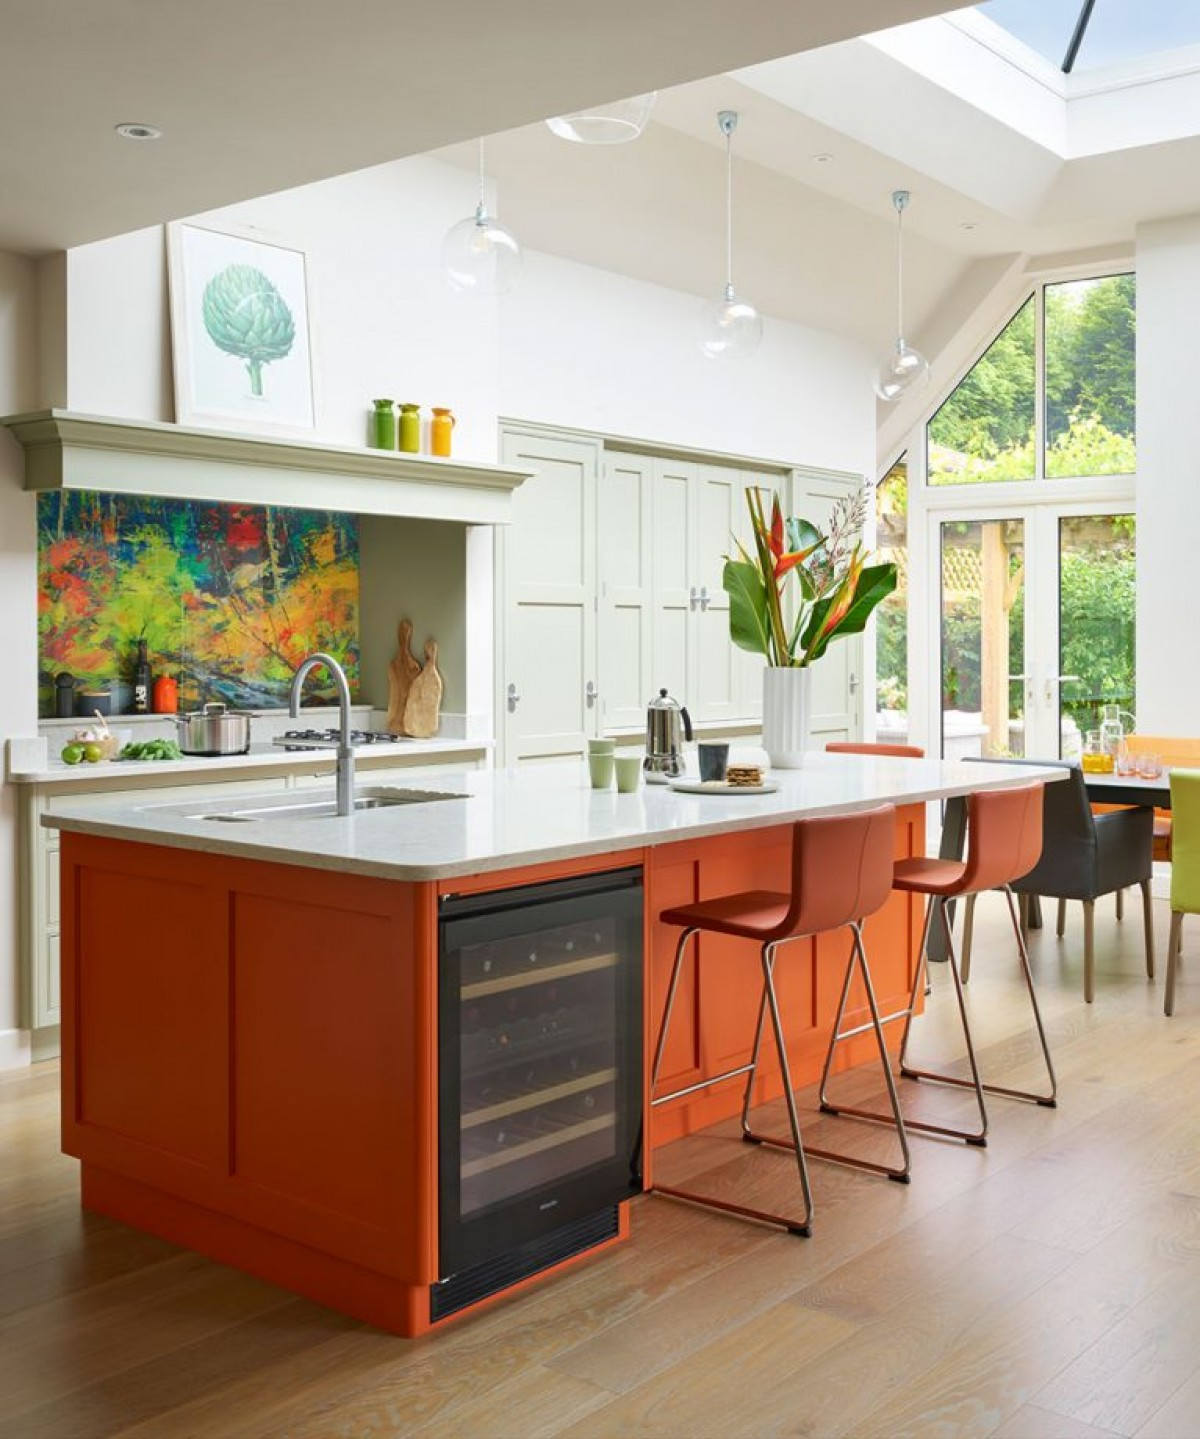 The kitchen of 2020